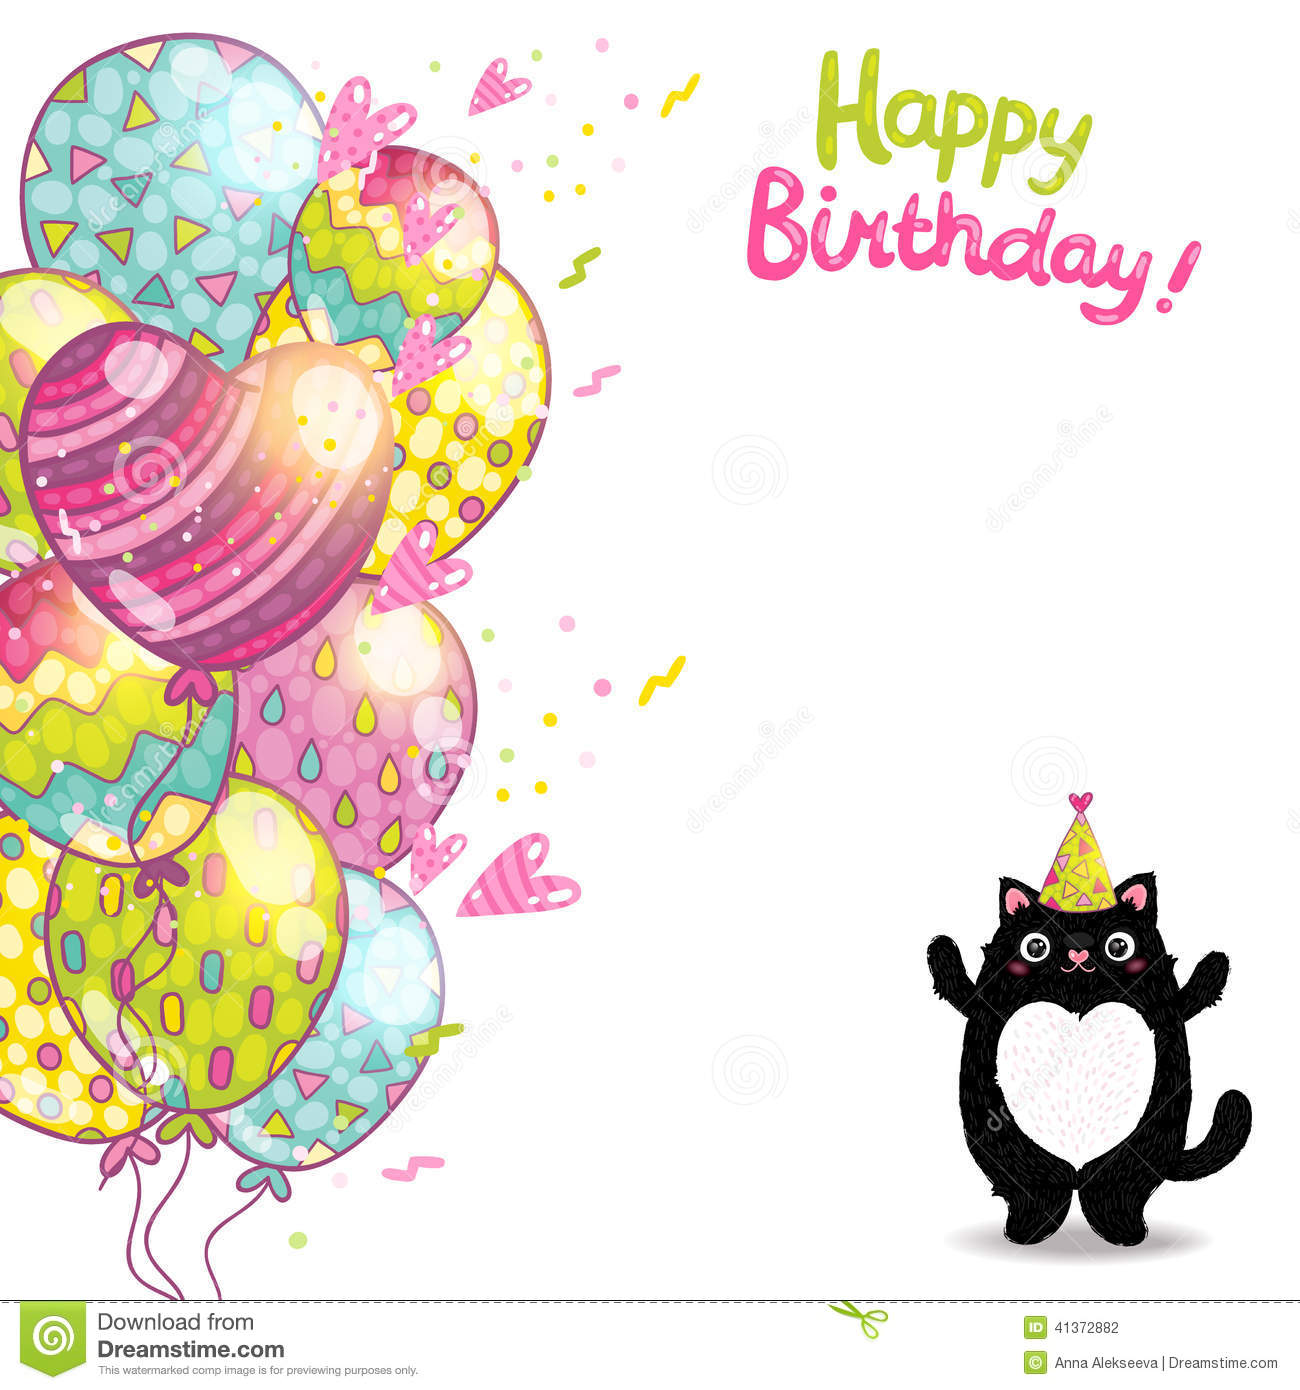 Happy Birthday Card Template Free Download family services – Happy Birthday Card Template Free Download